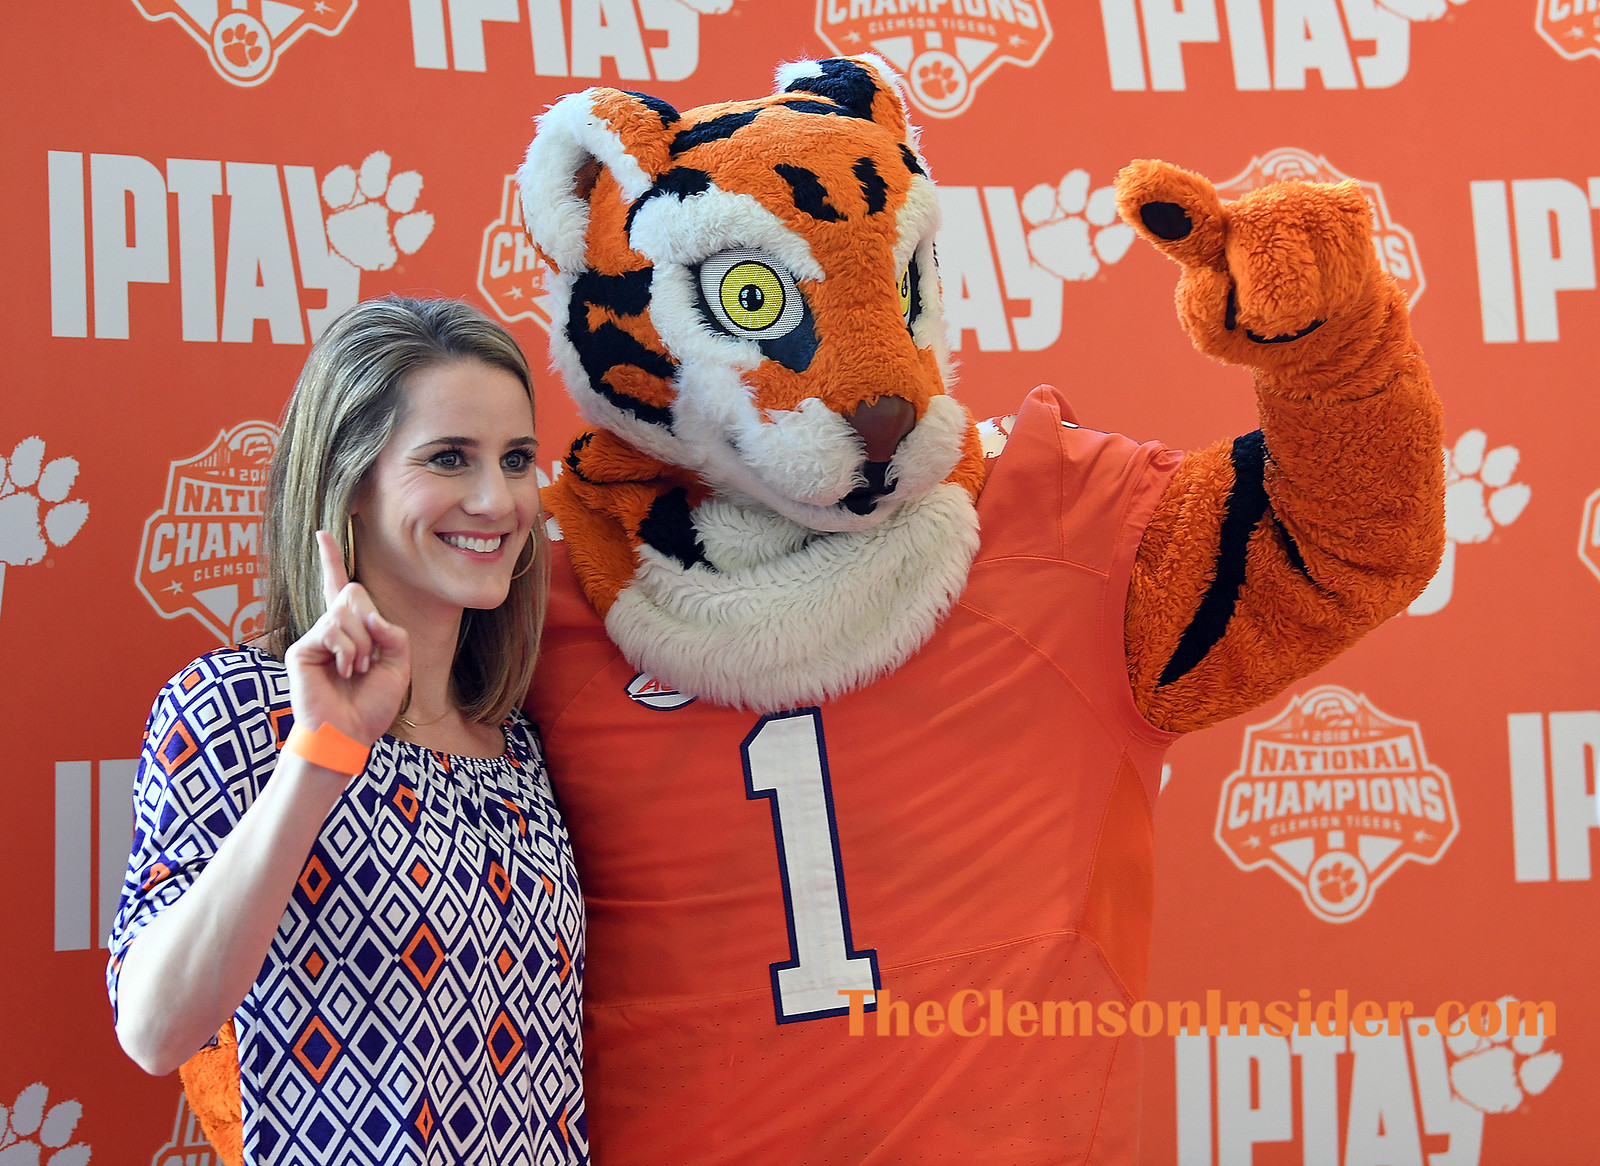 The York and Charlotte County Clemson Clubs held their annual Prowl & Growl Monday, April 22, 2019 in Charlotte. Bart Boatwright/The Clemson Insider